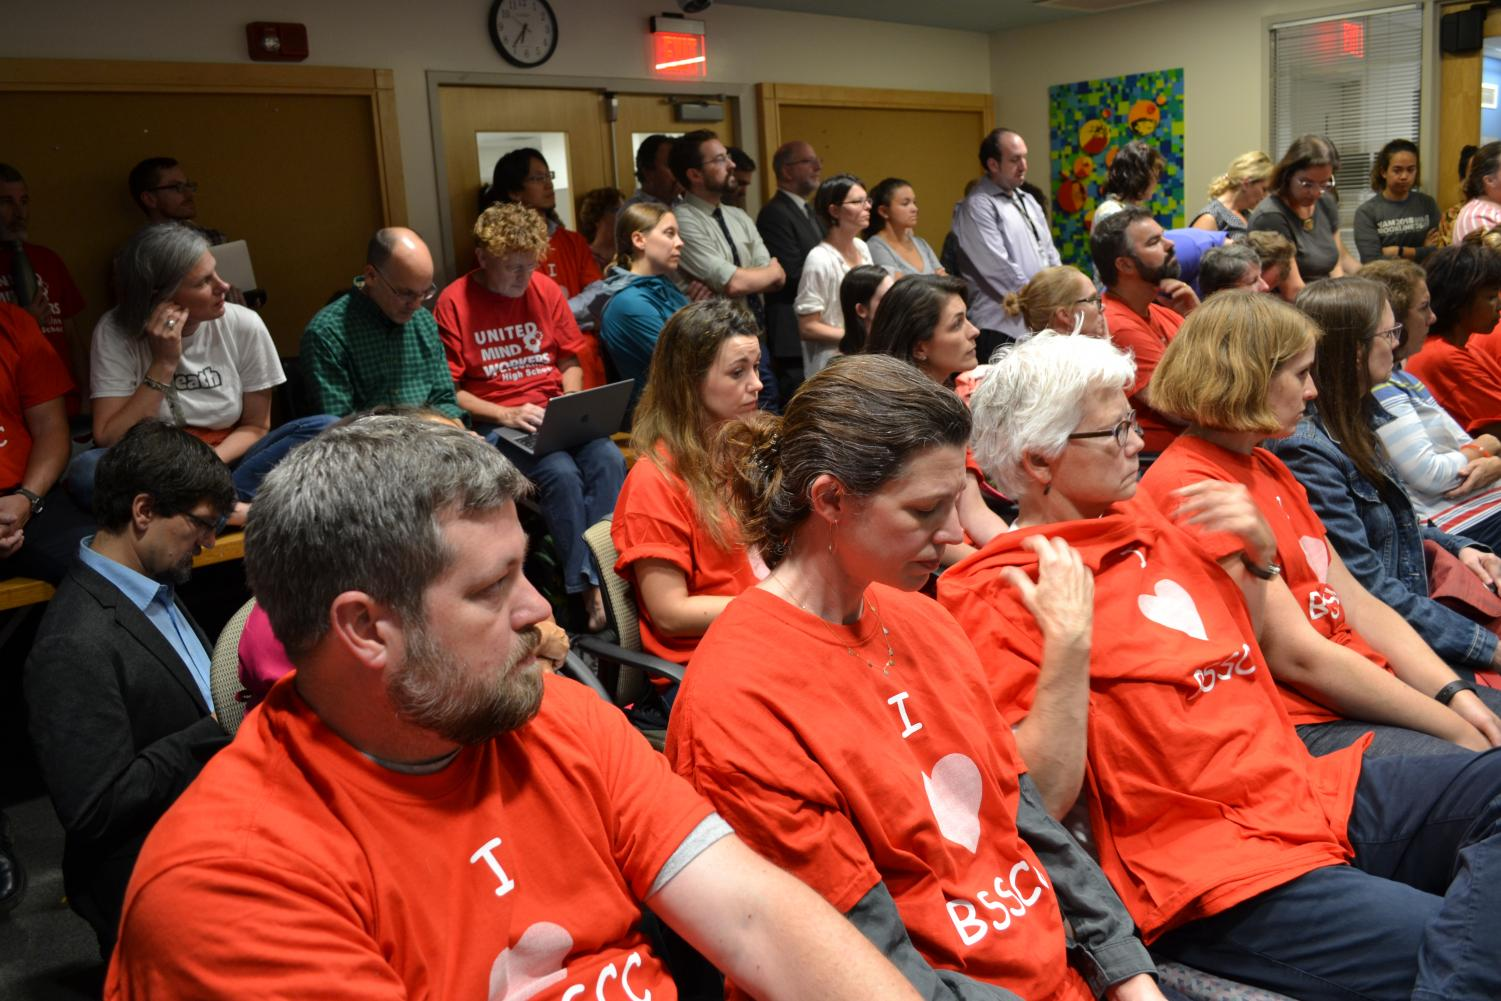 BSSCC supporters and educators sit in on a school committee meeting to advocate for the childcare center. The program will be without a location in 2020 if adjustments are not made.